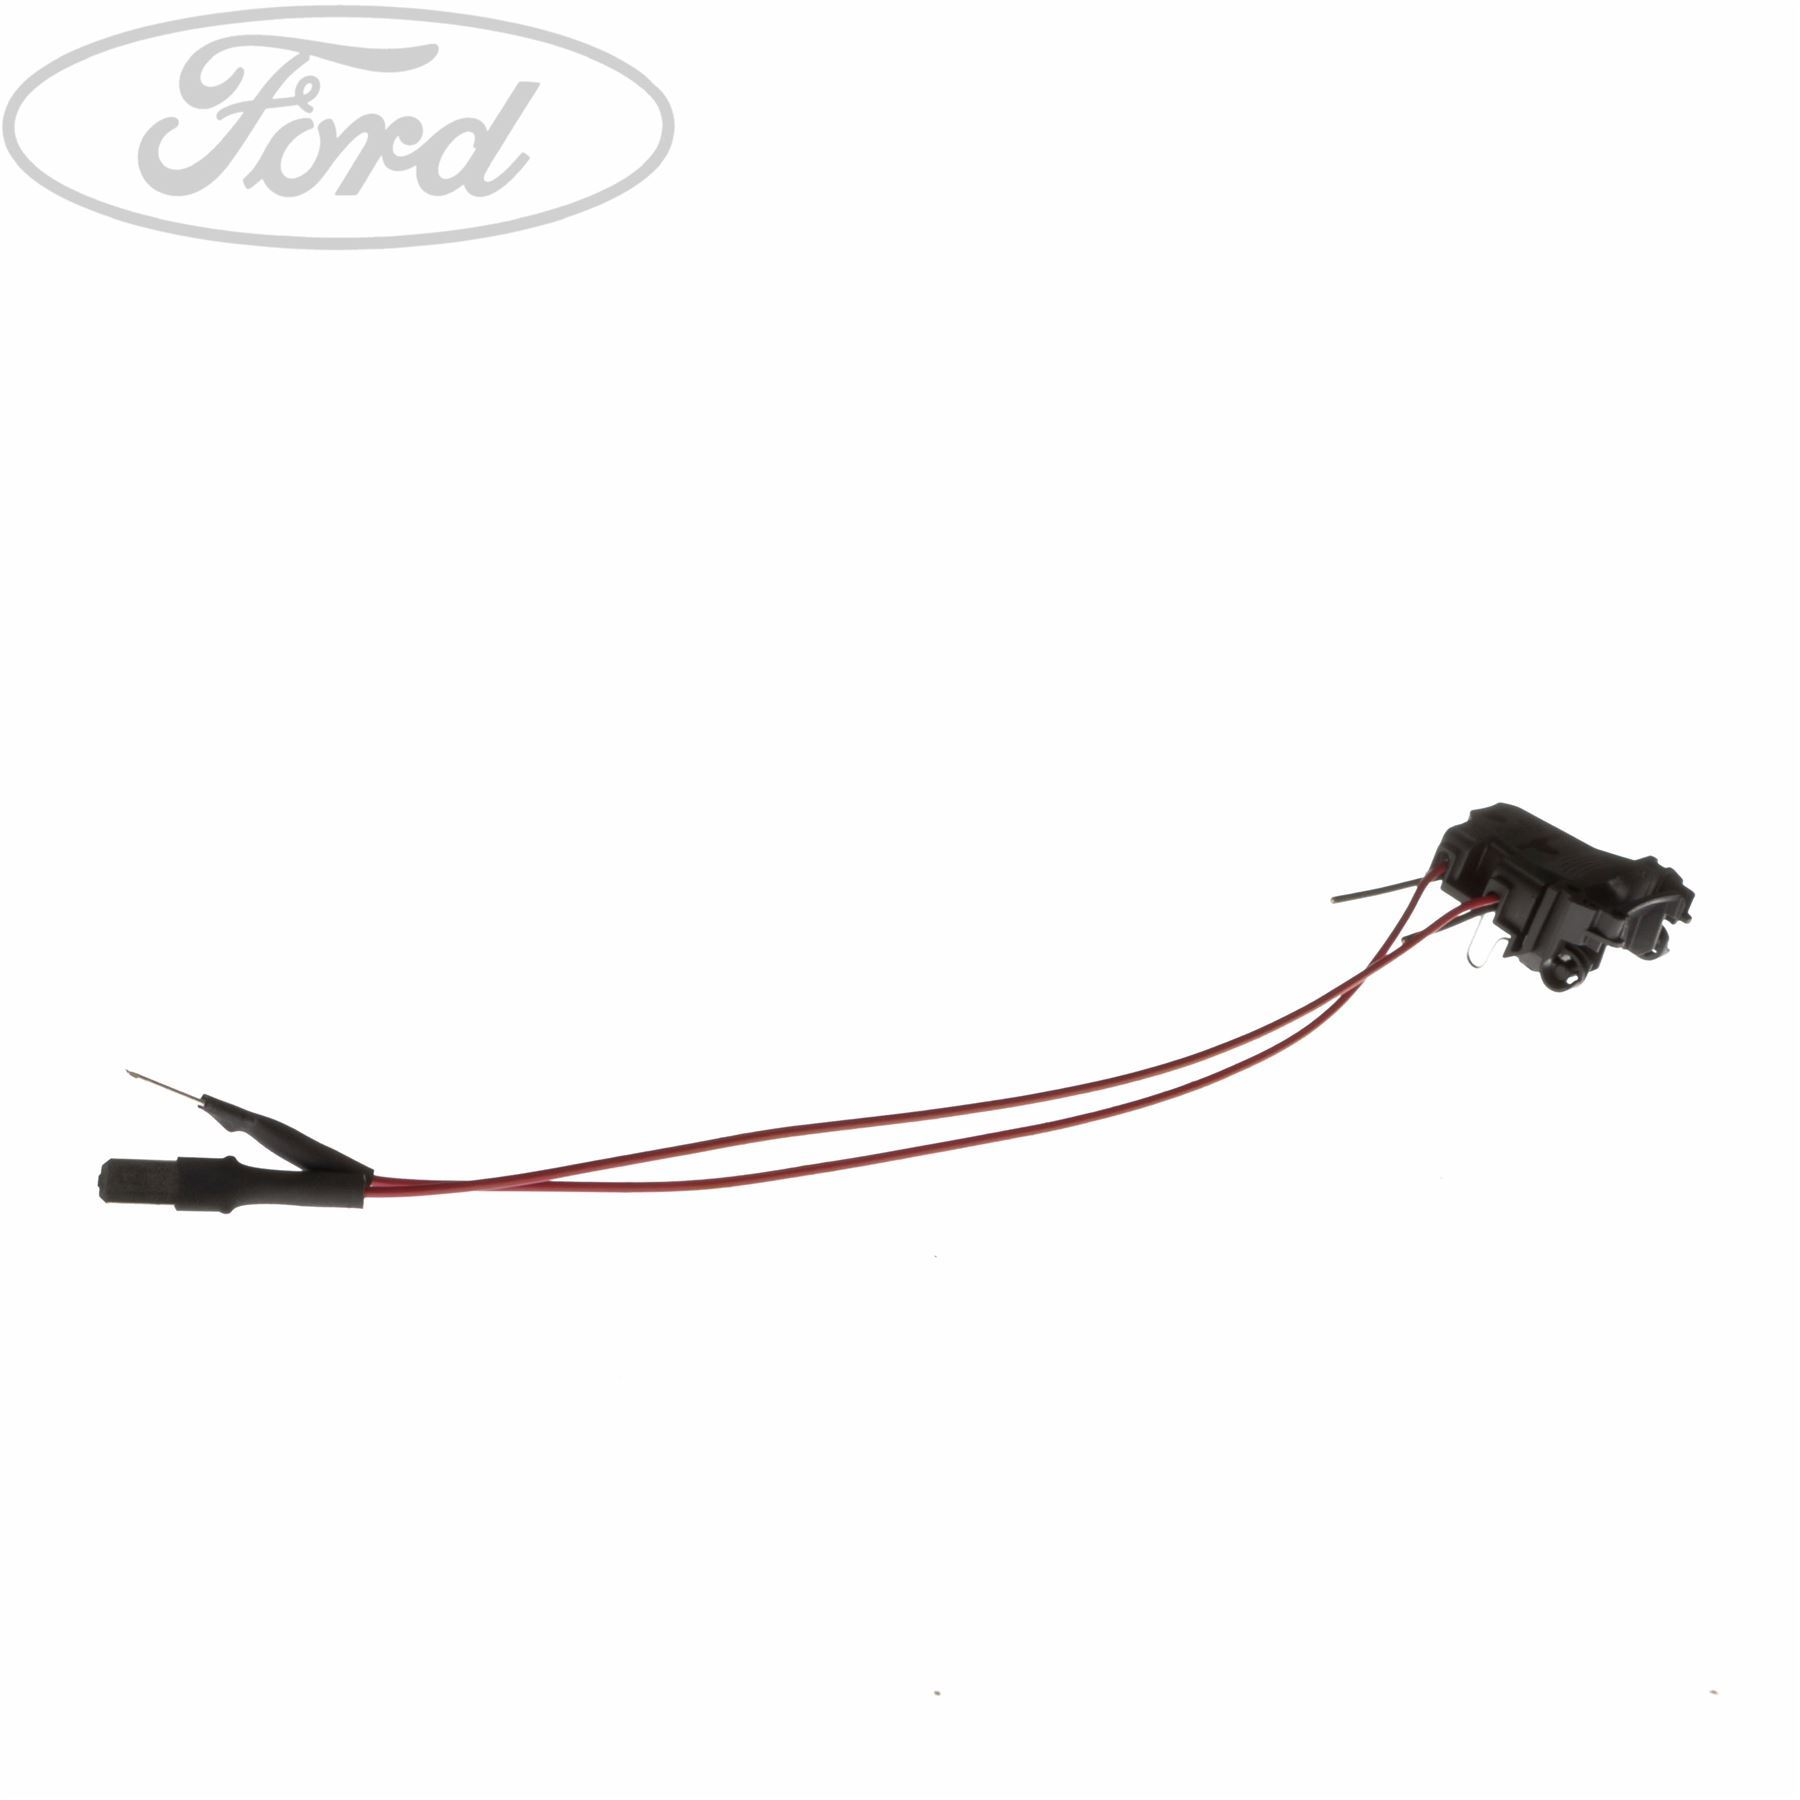 hight resolution of details about genuine ford focus mk2 front headlight resistor wiring 1758231